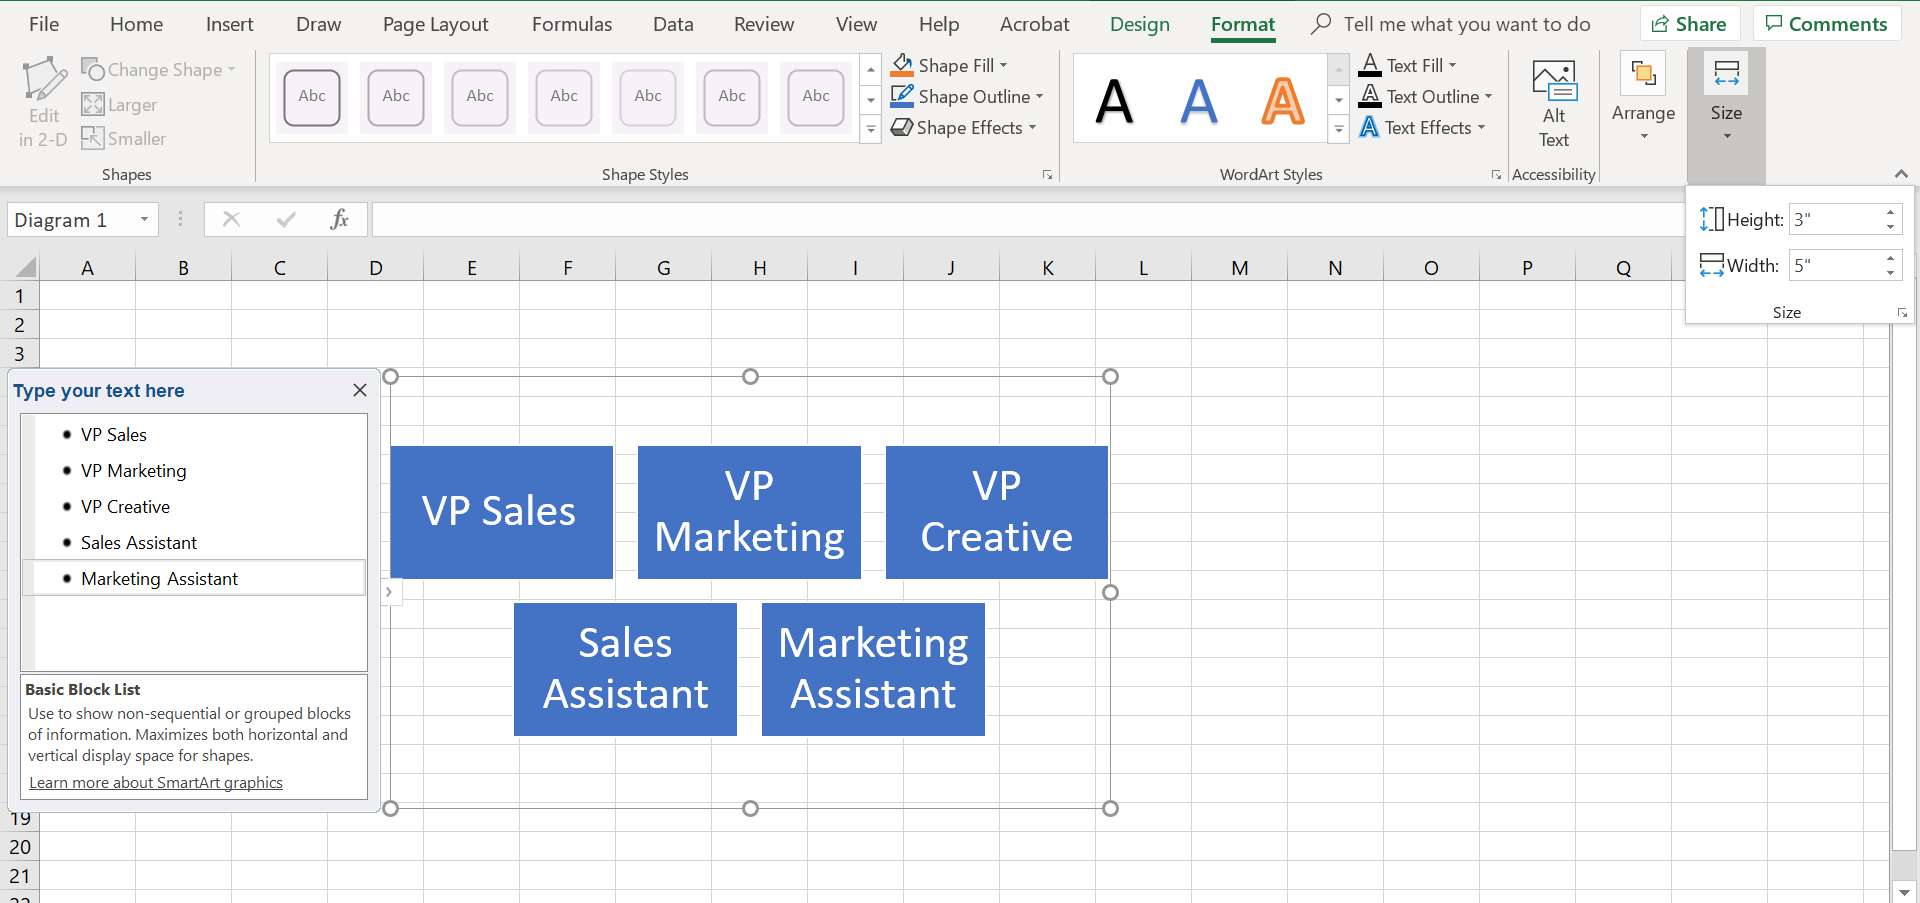 Excel's Format tab for illustrations and other art.